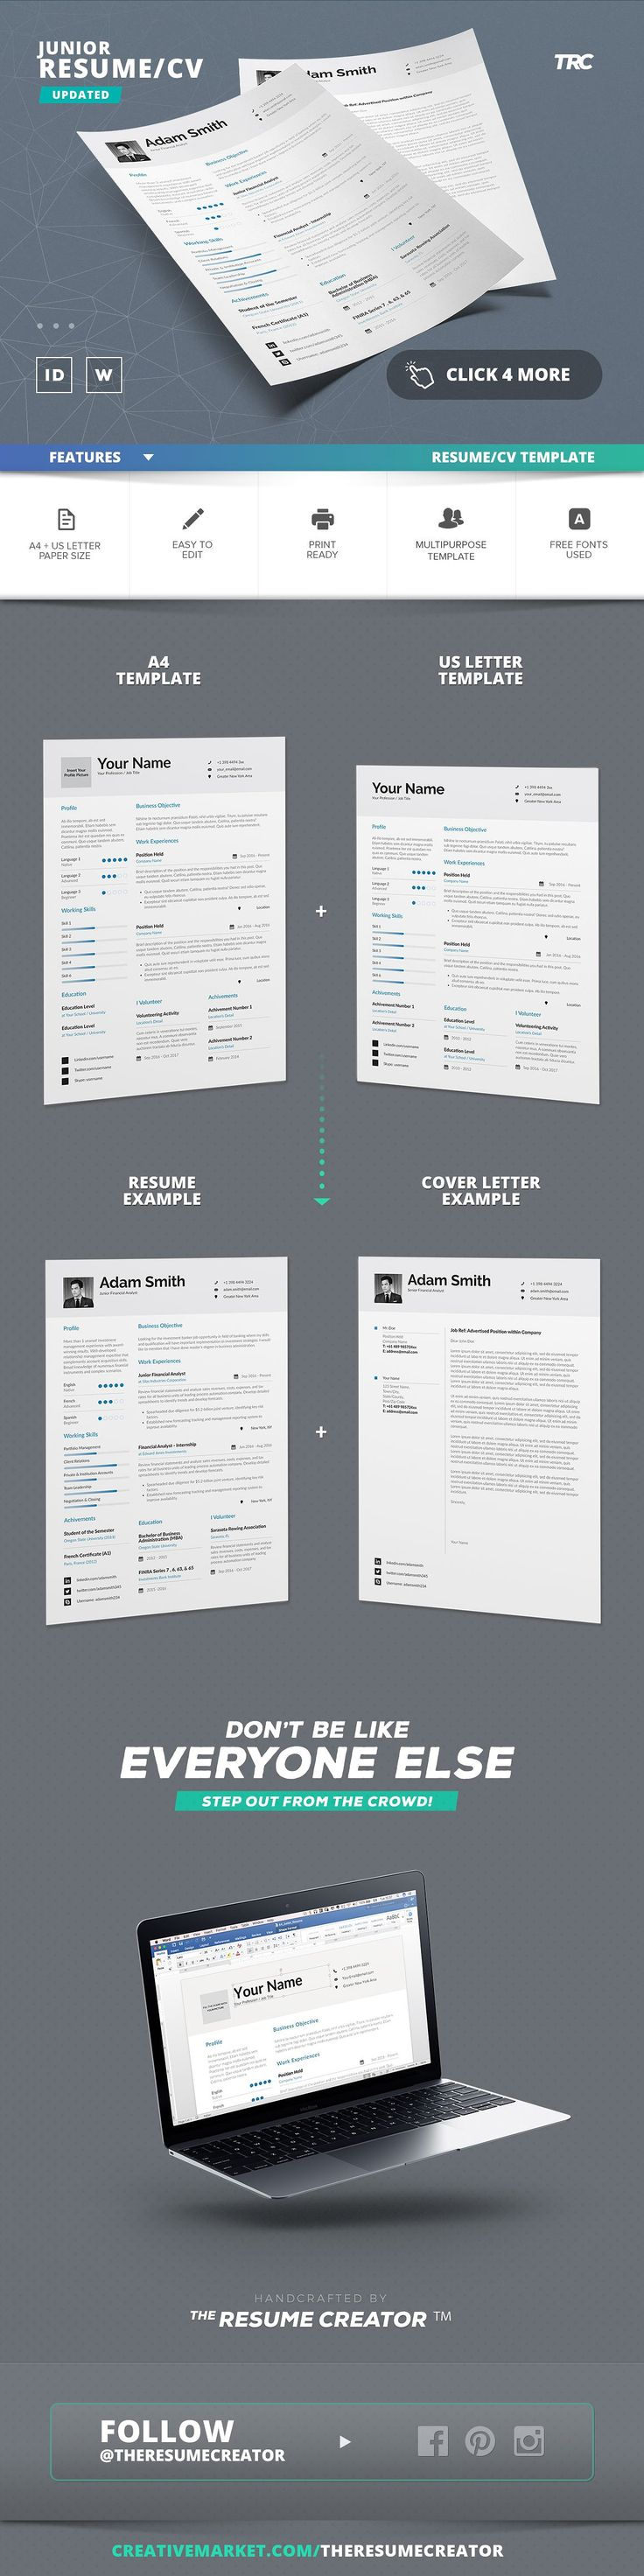 31 best CV images on Pinterest | Resume templates, Curriculum and Cv ...